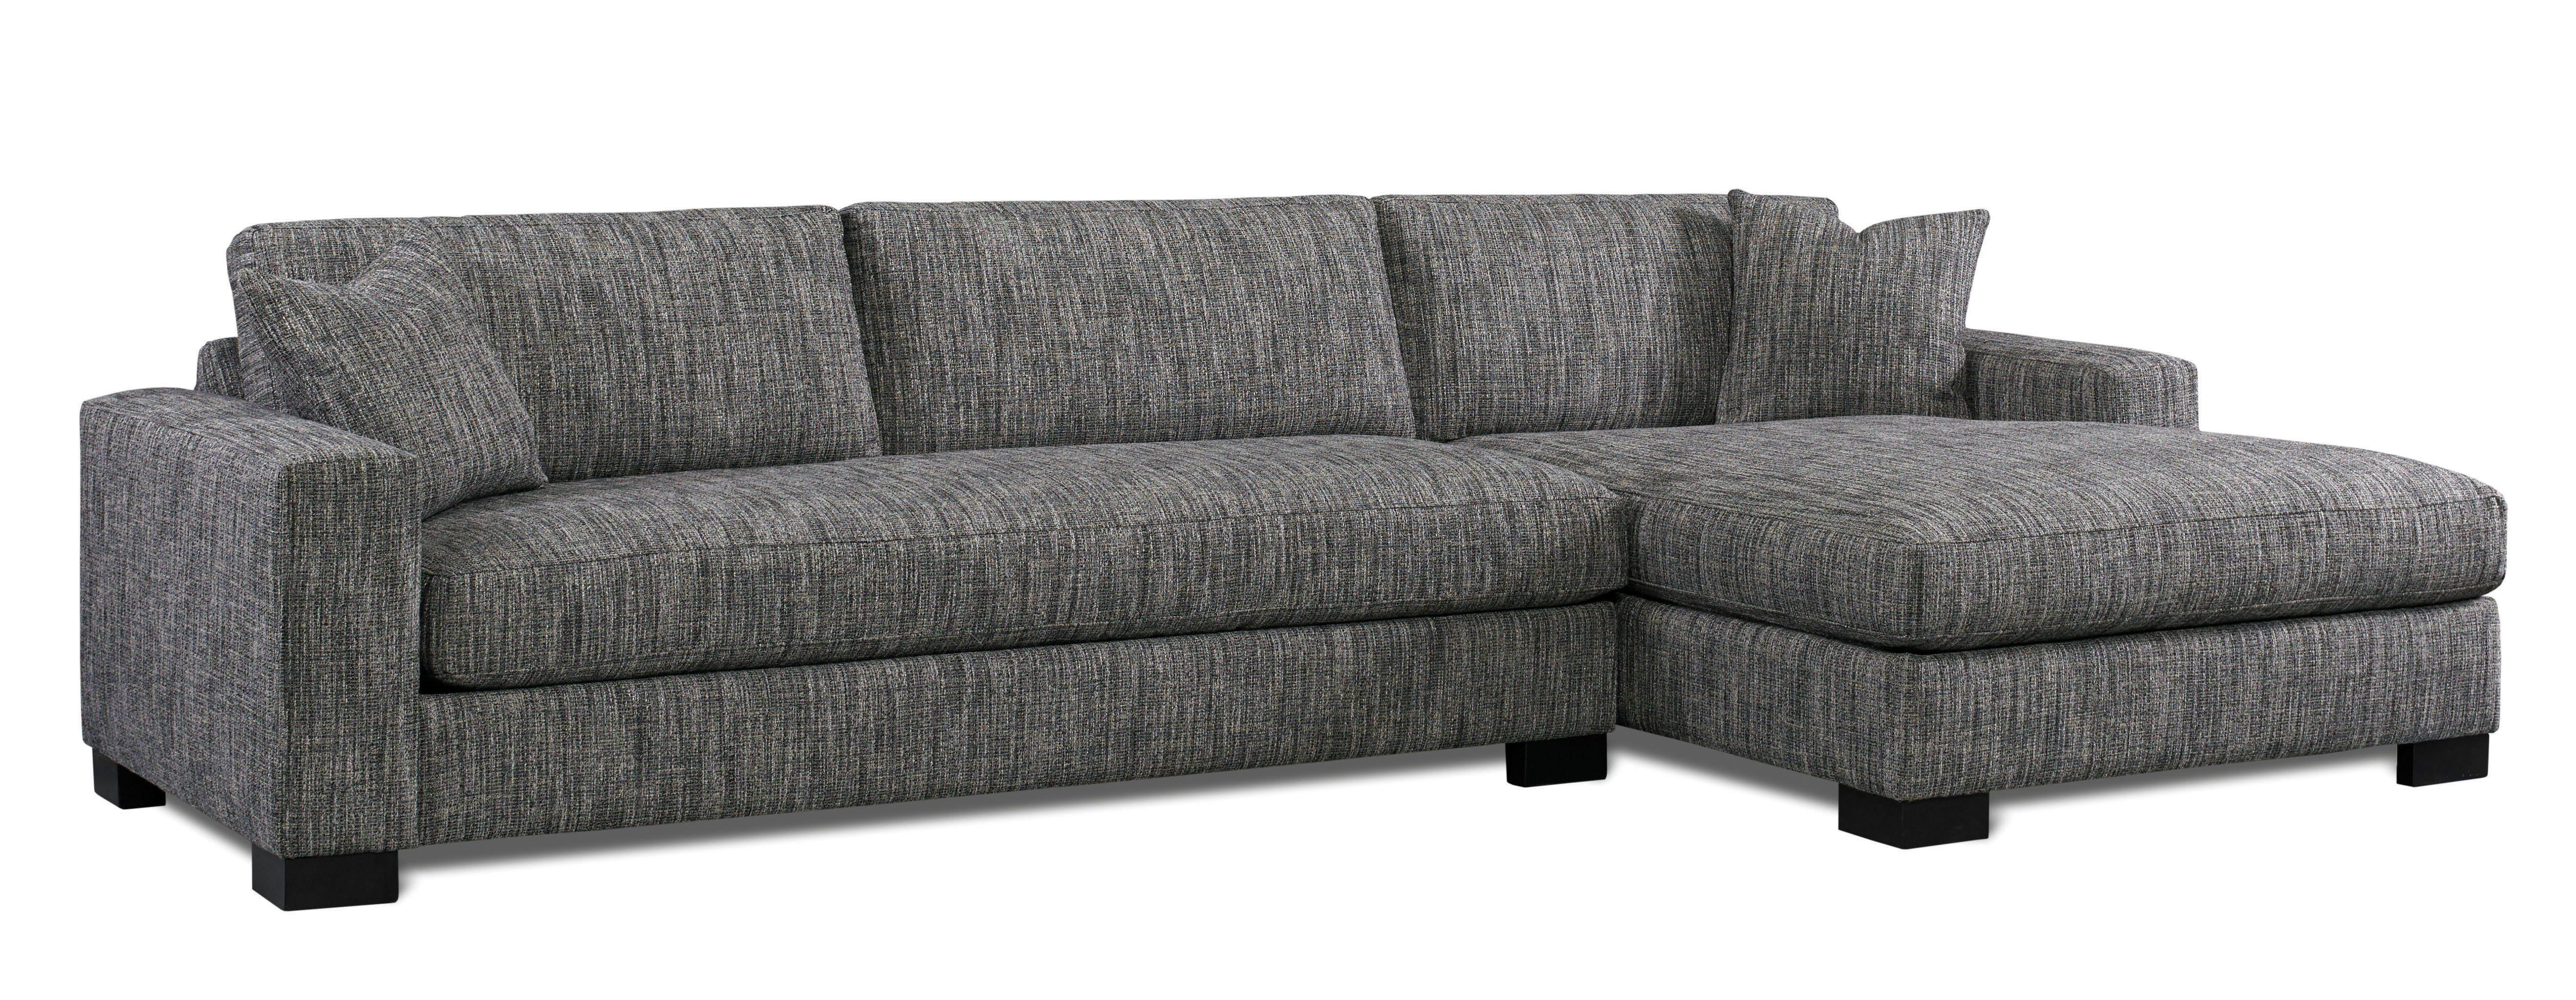 2667 Connor Sectional